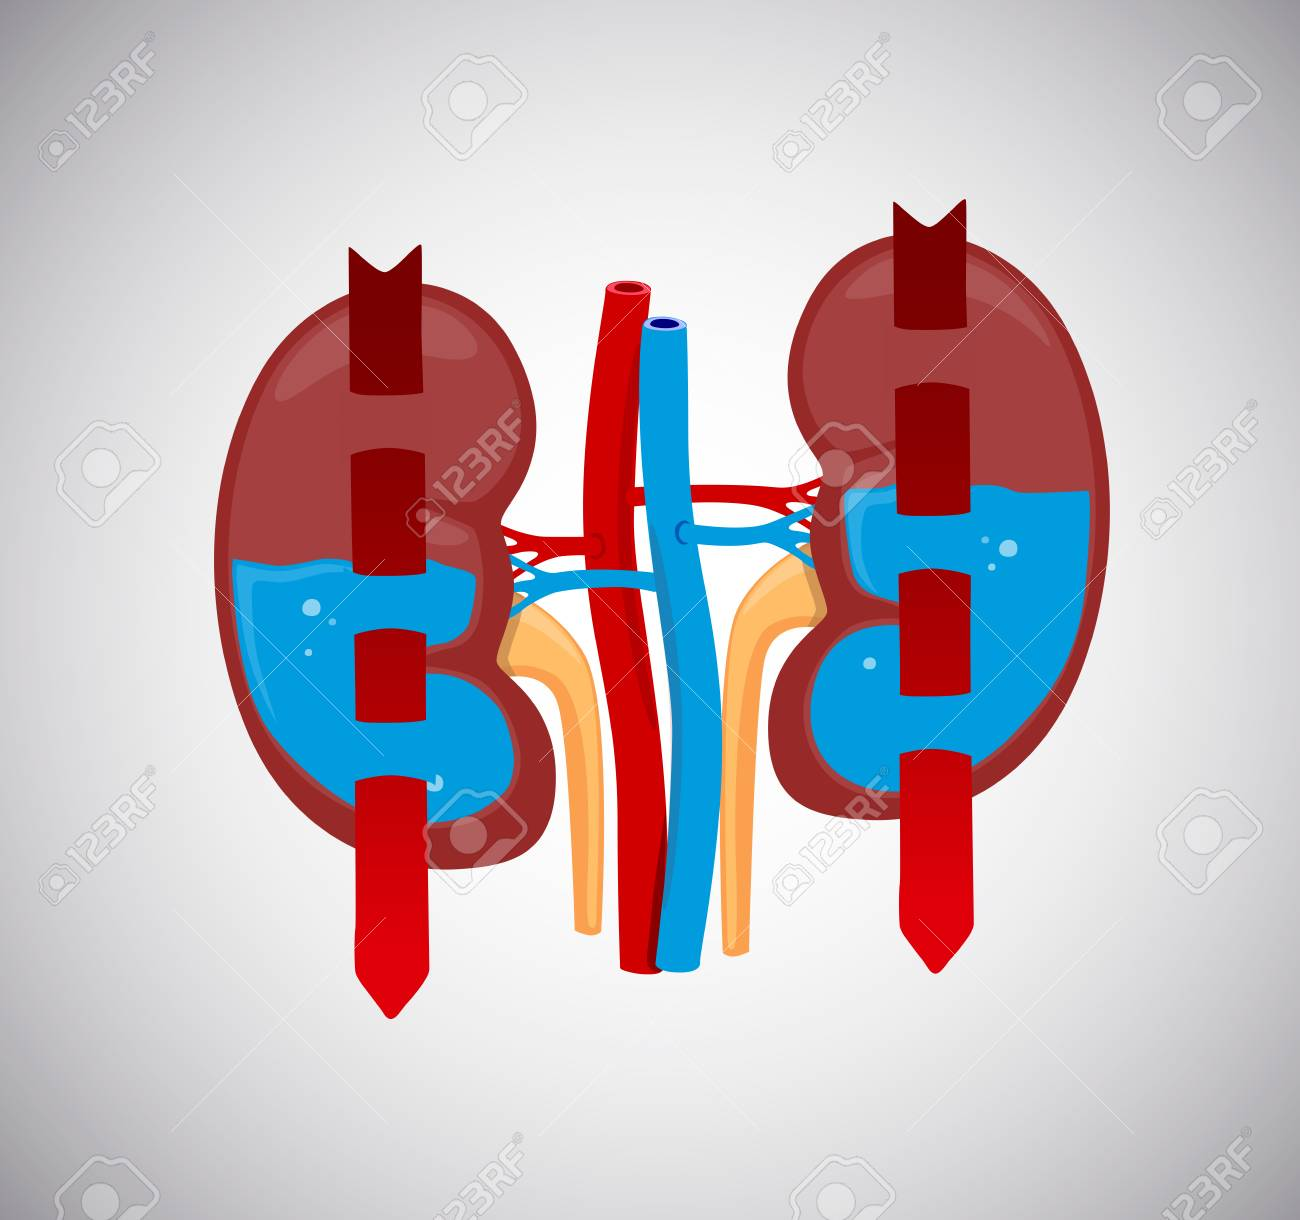 Kidneys cleaning blood with water inside. Blood circulates throught kidneys. - 125276360